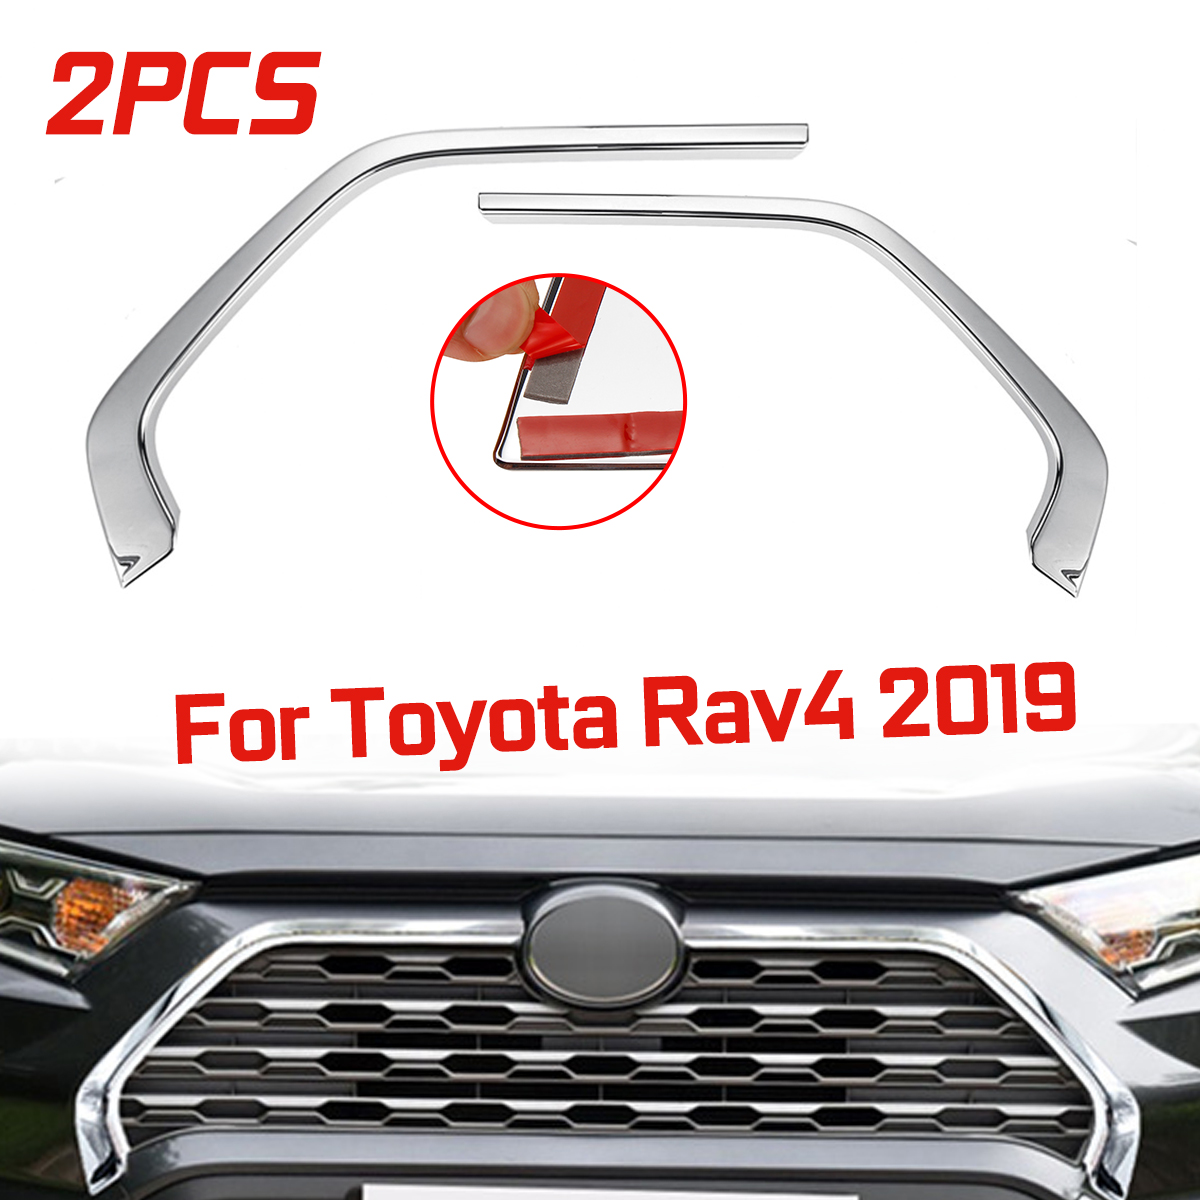 2Pcs Chrome Front Grill Grille Decorative Cover Trim Strips For Toyota Rav4 2019